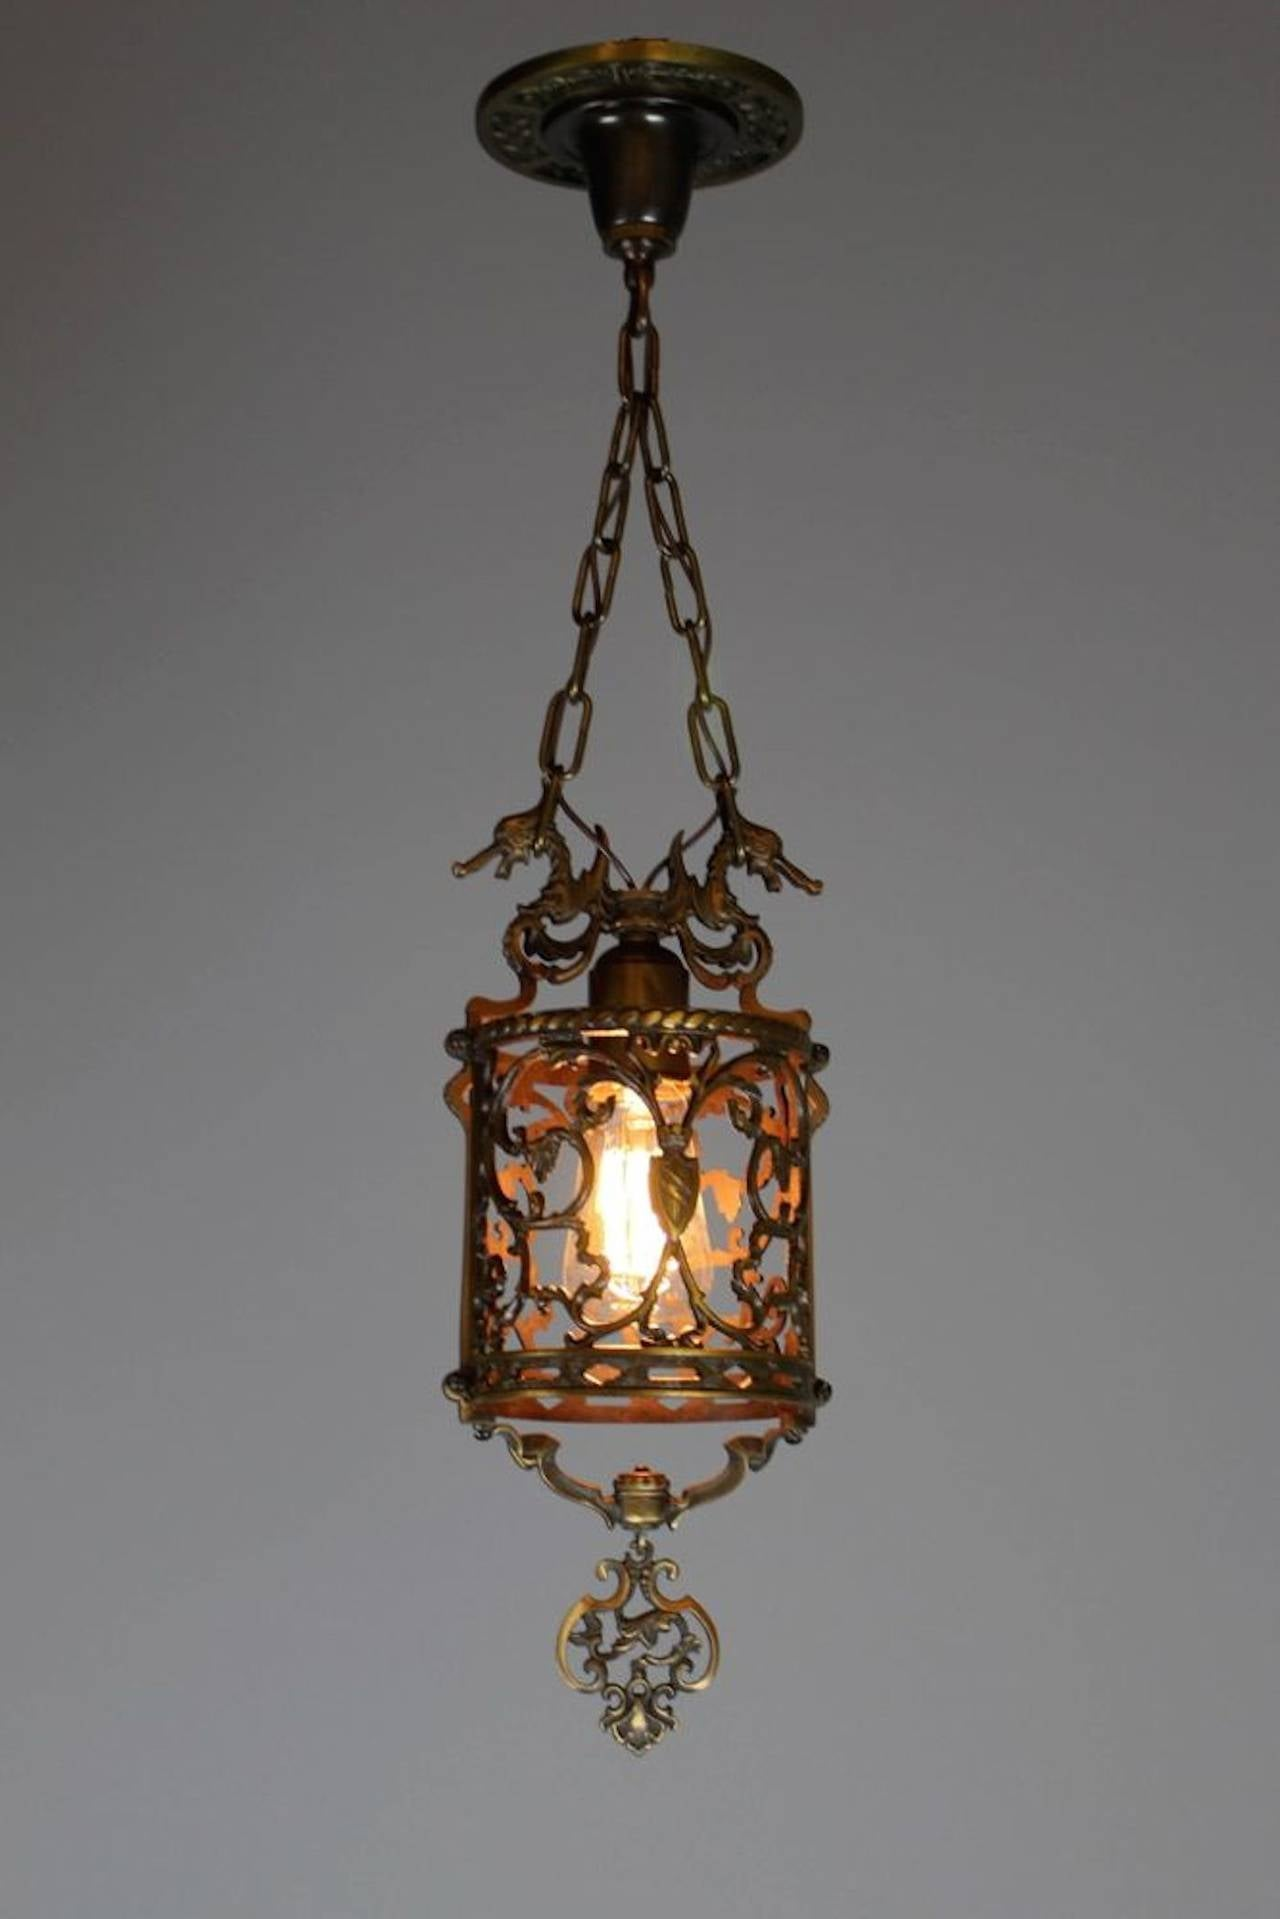 Spanish Style Colonial Revival Bronze Sea Horse Hall Lantern At 1stdibs